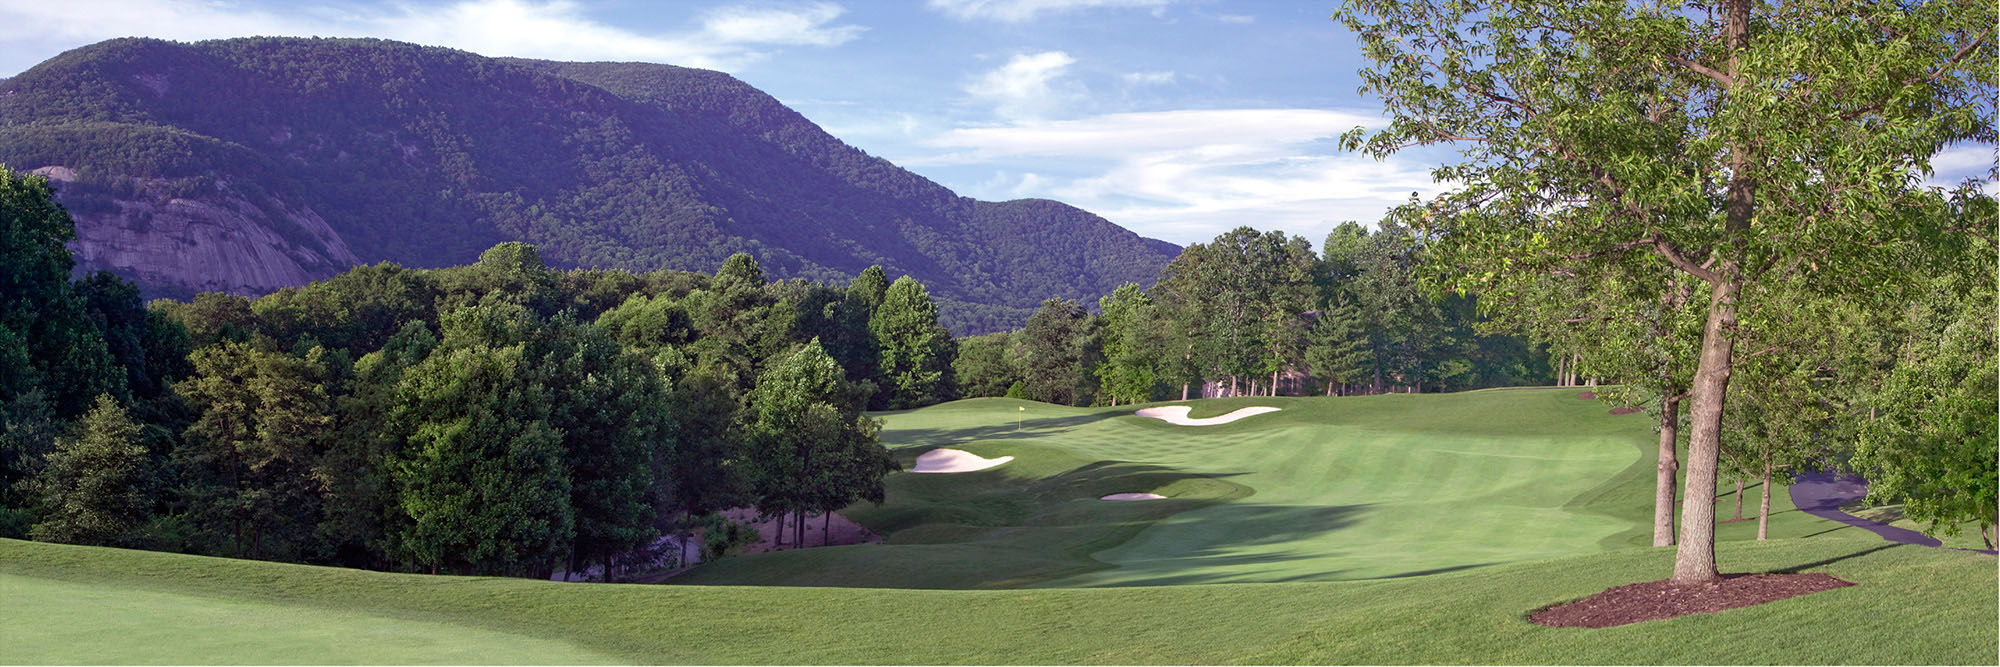 Golf Course Image - The Cliffs at Glassy No. 4